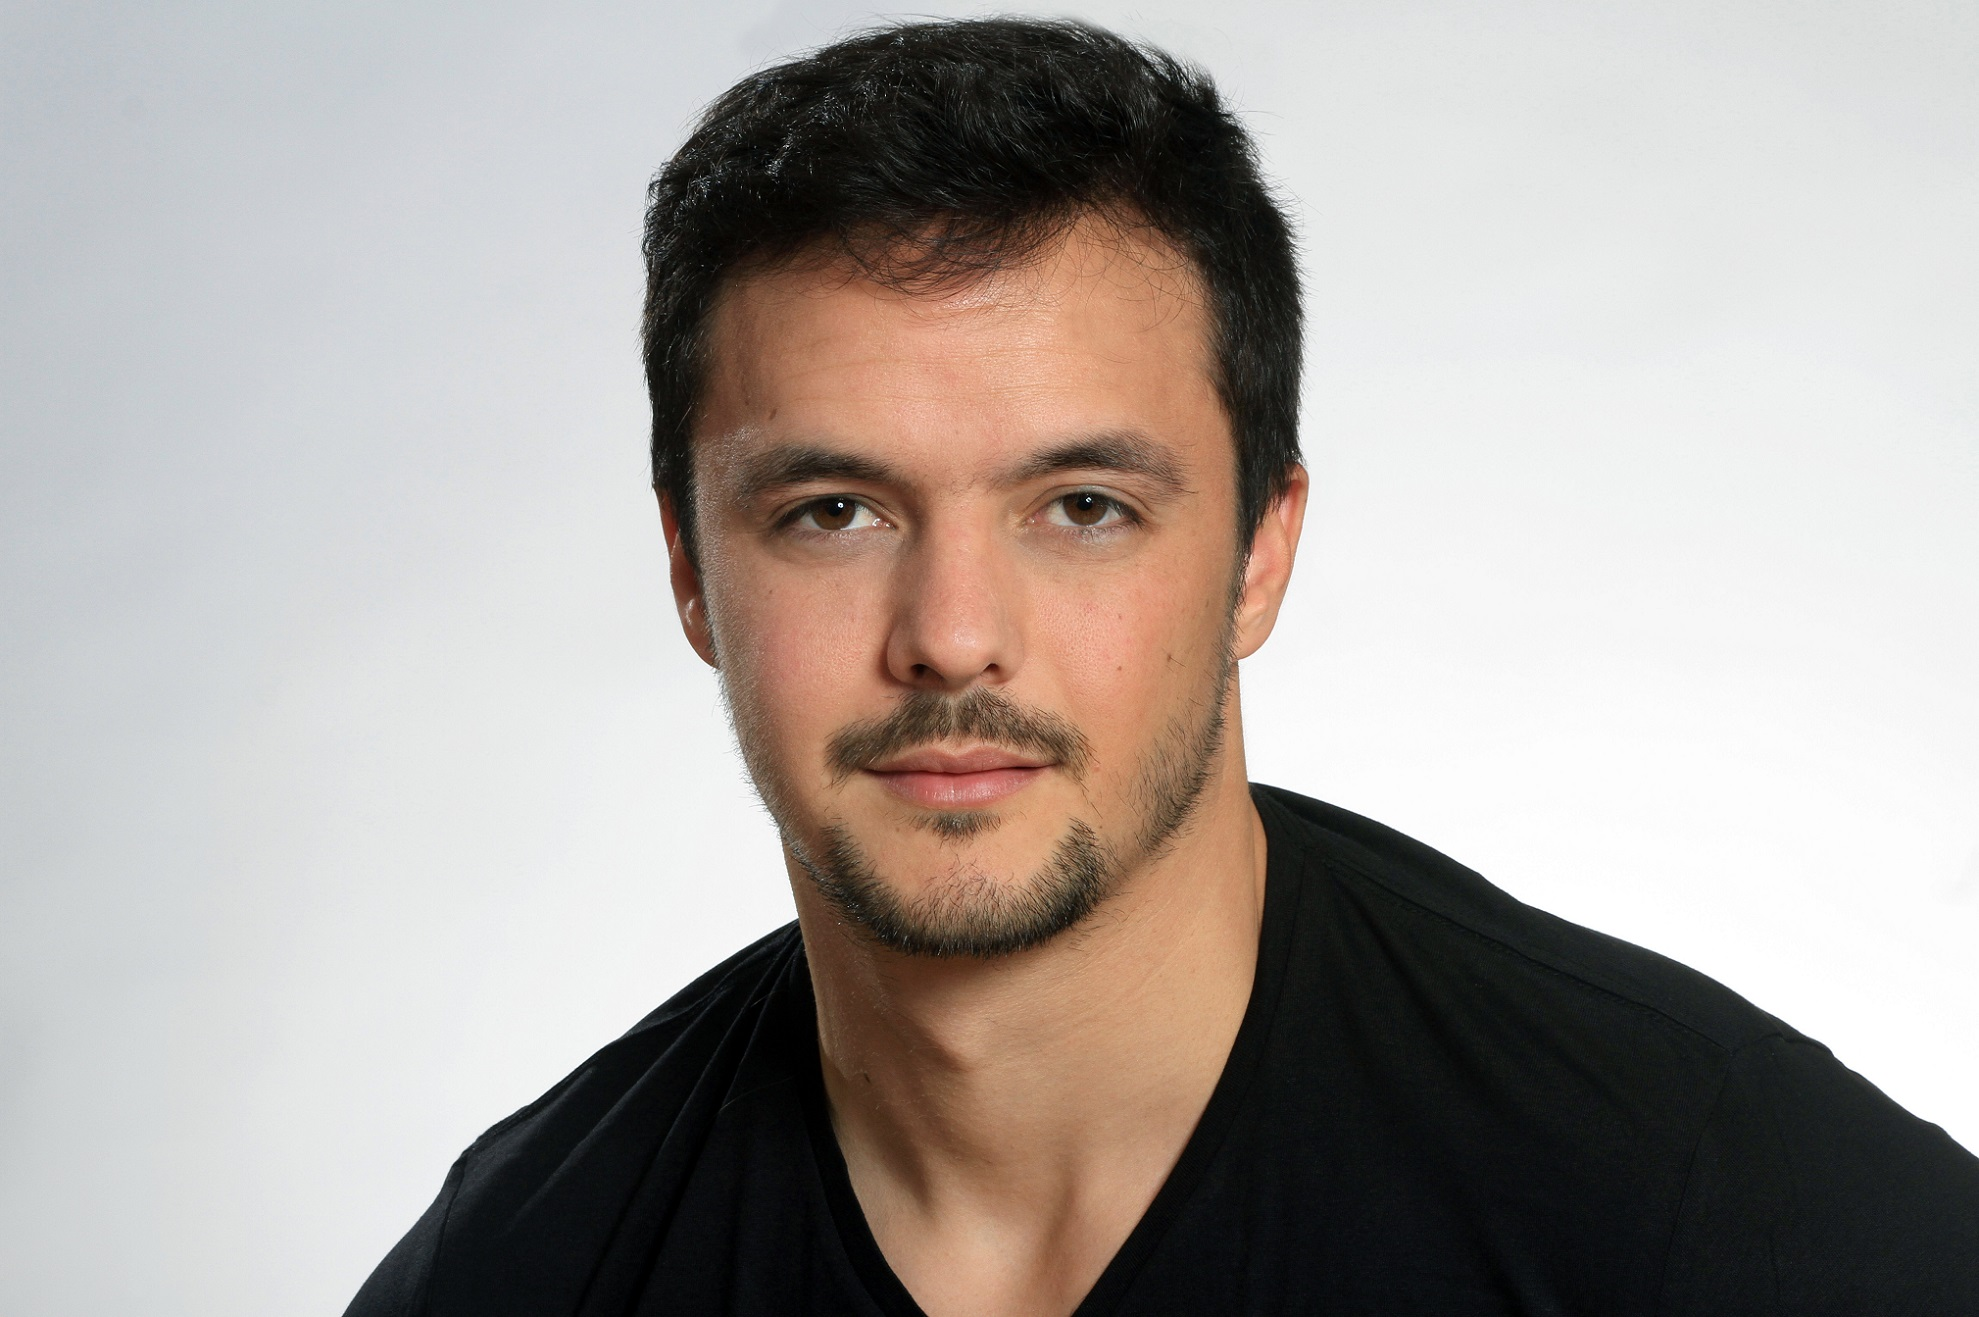 Lior Lamesh, CEO and co-founder of GK8